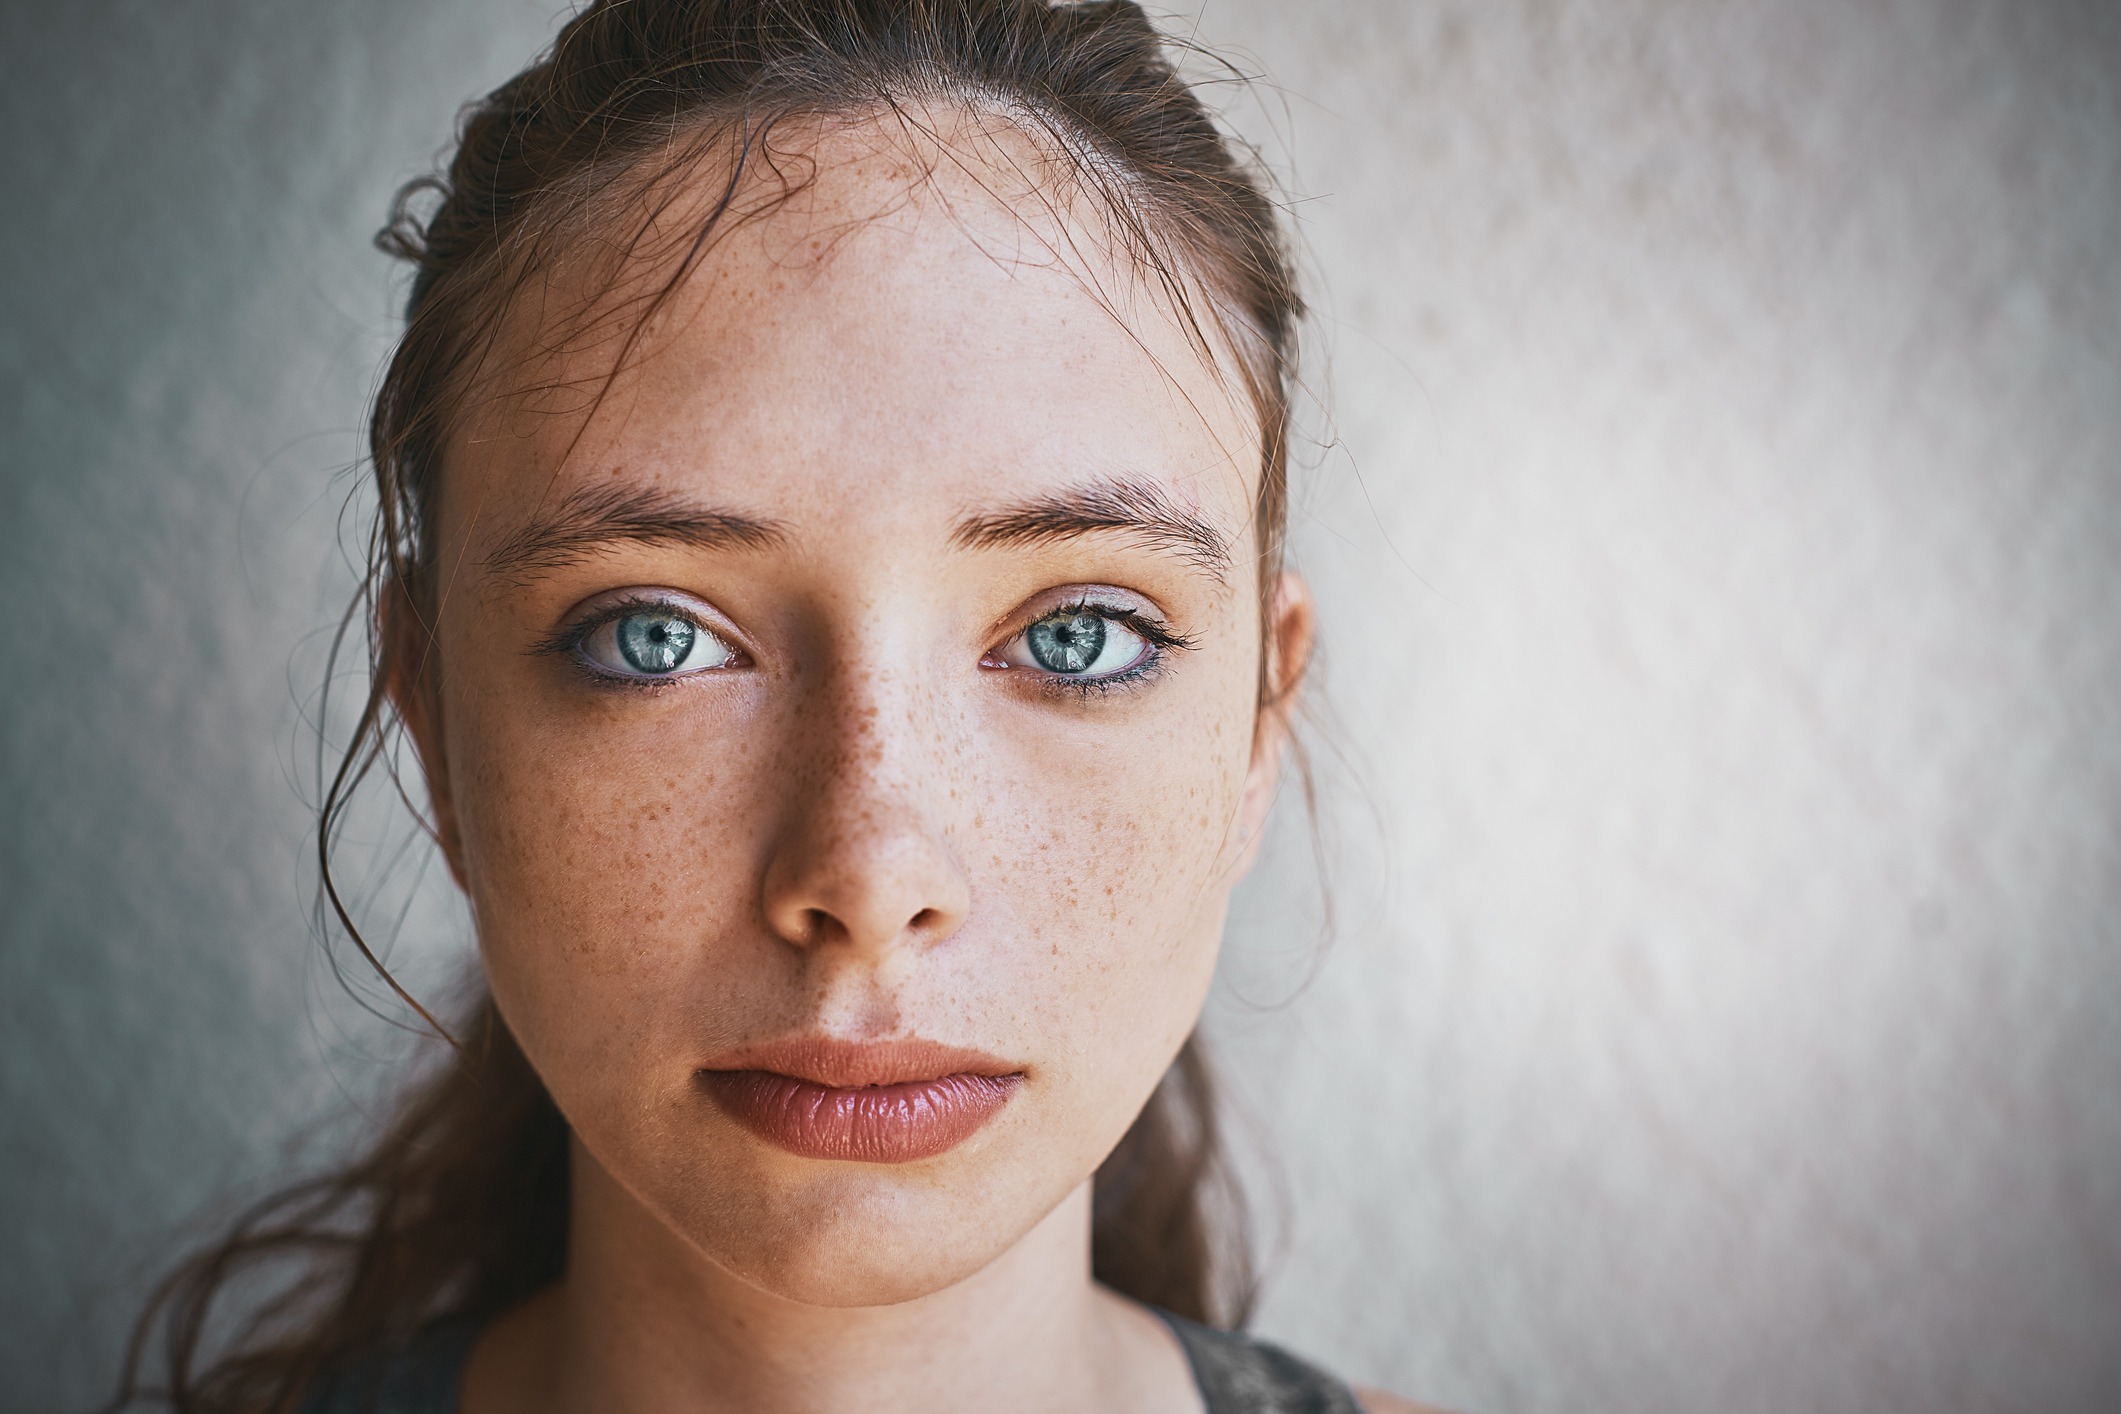 A young girl with freckles and grayish blue eyes with her hair pulled back stairs into the camera. There is a gray background.